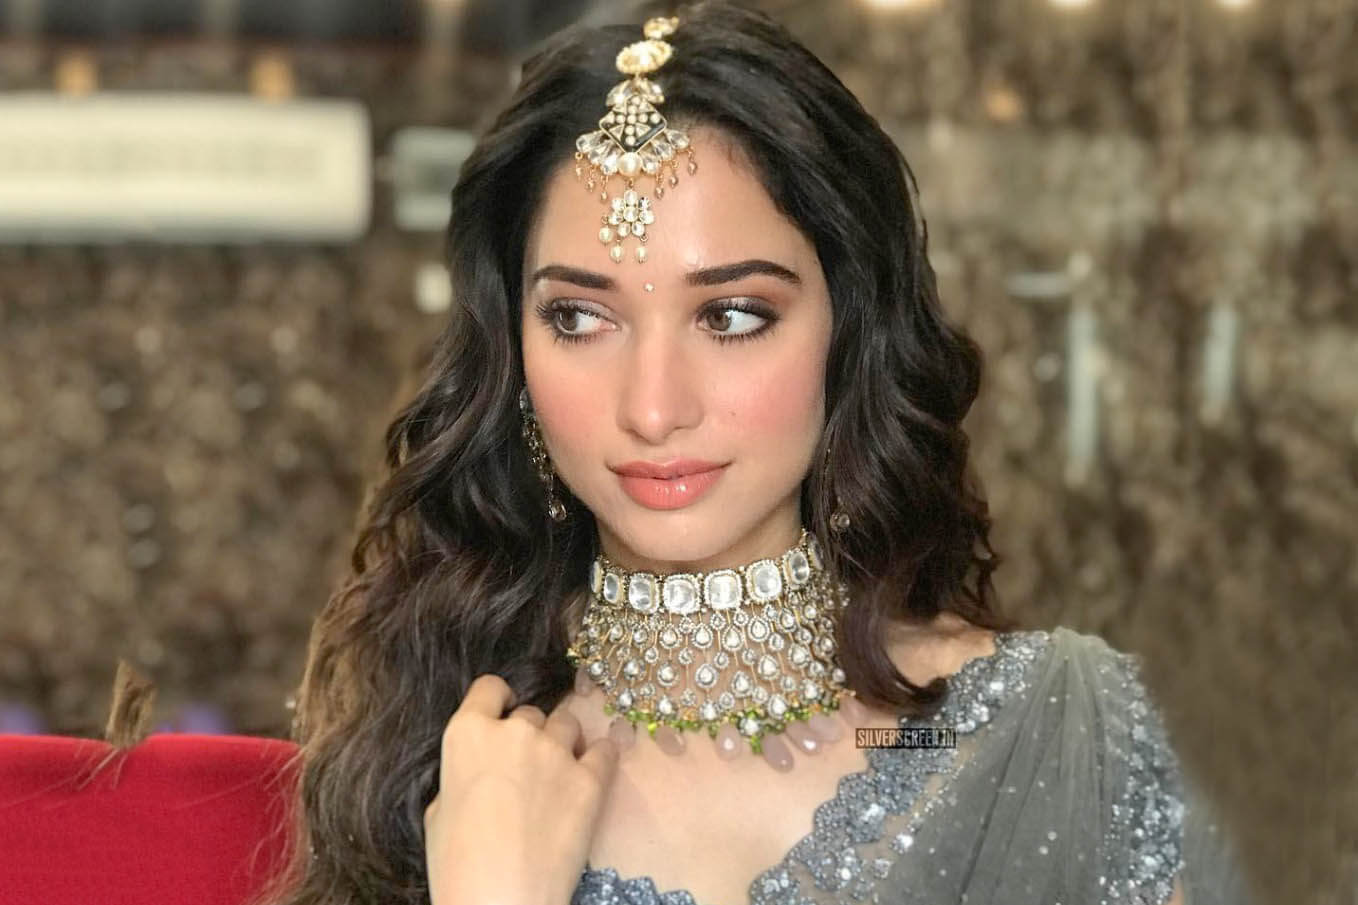 Tamannaah Bhatia Photos(images), Height, Biography, Movies, Date Of Birth, House, Details, Marriage, Boyfriend, Net Worth, Education, Instagram, Facebook, Twitter, Wiki, Imdb, Youtube (35)